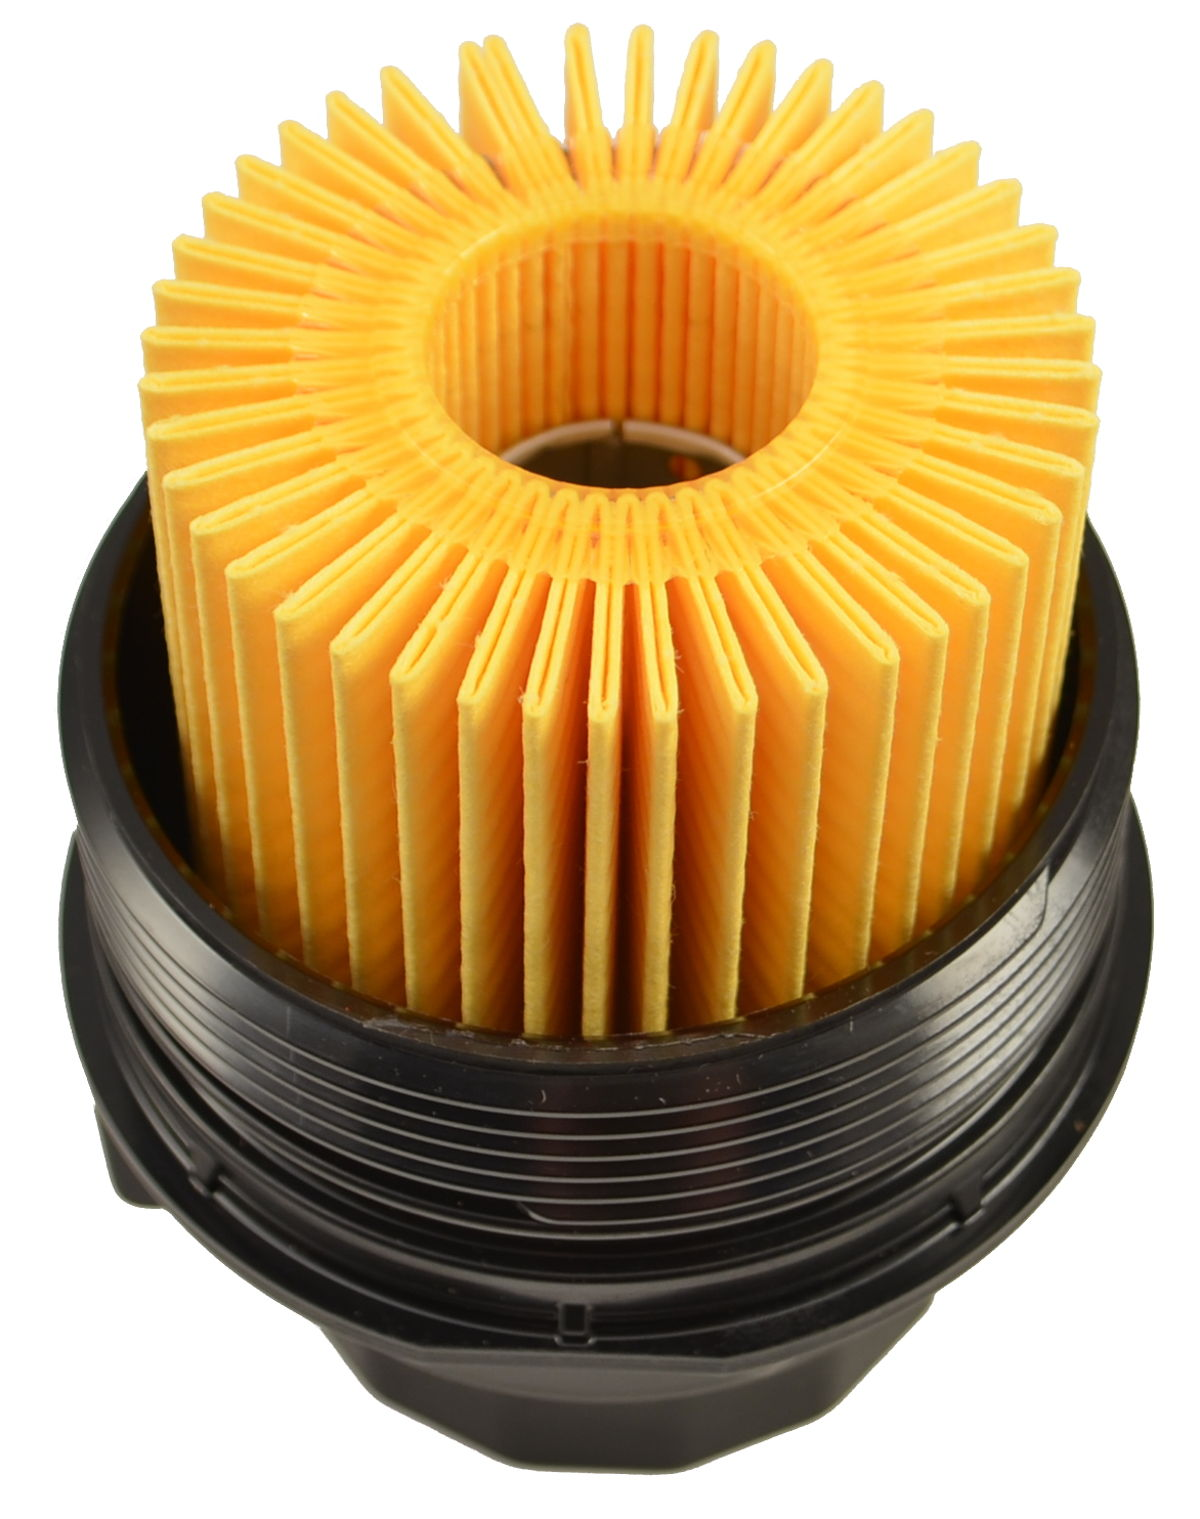 Prius oil filter wrench motivx tools oil filter housing with filter solutioingenieria Image collections